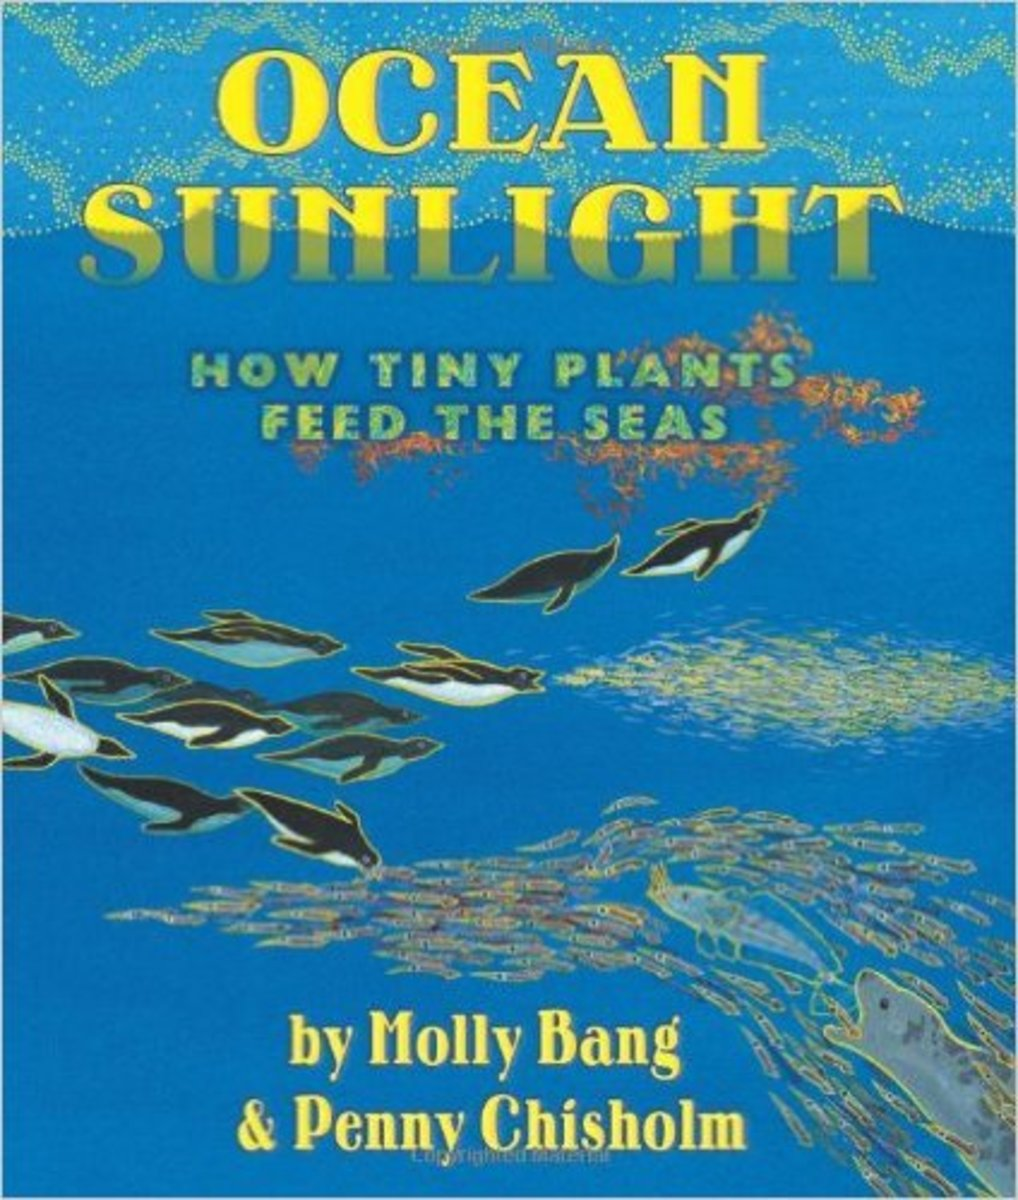 Ocean Sunlight: How Tiny Plants Feed the Seas by Molly Bang  - Images are from amazon.com unless otherwise noted.